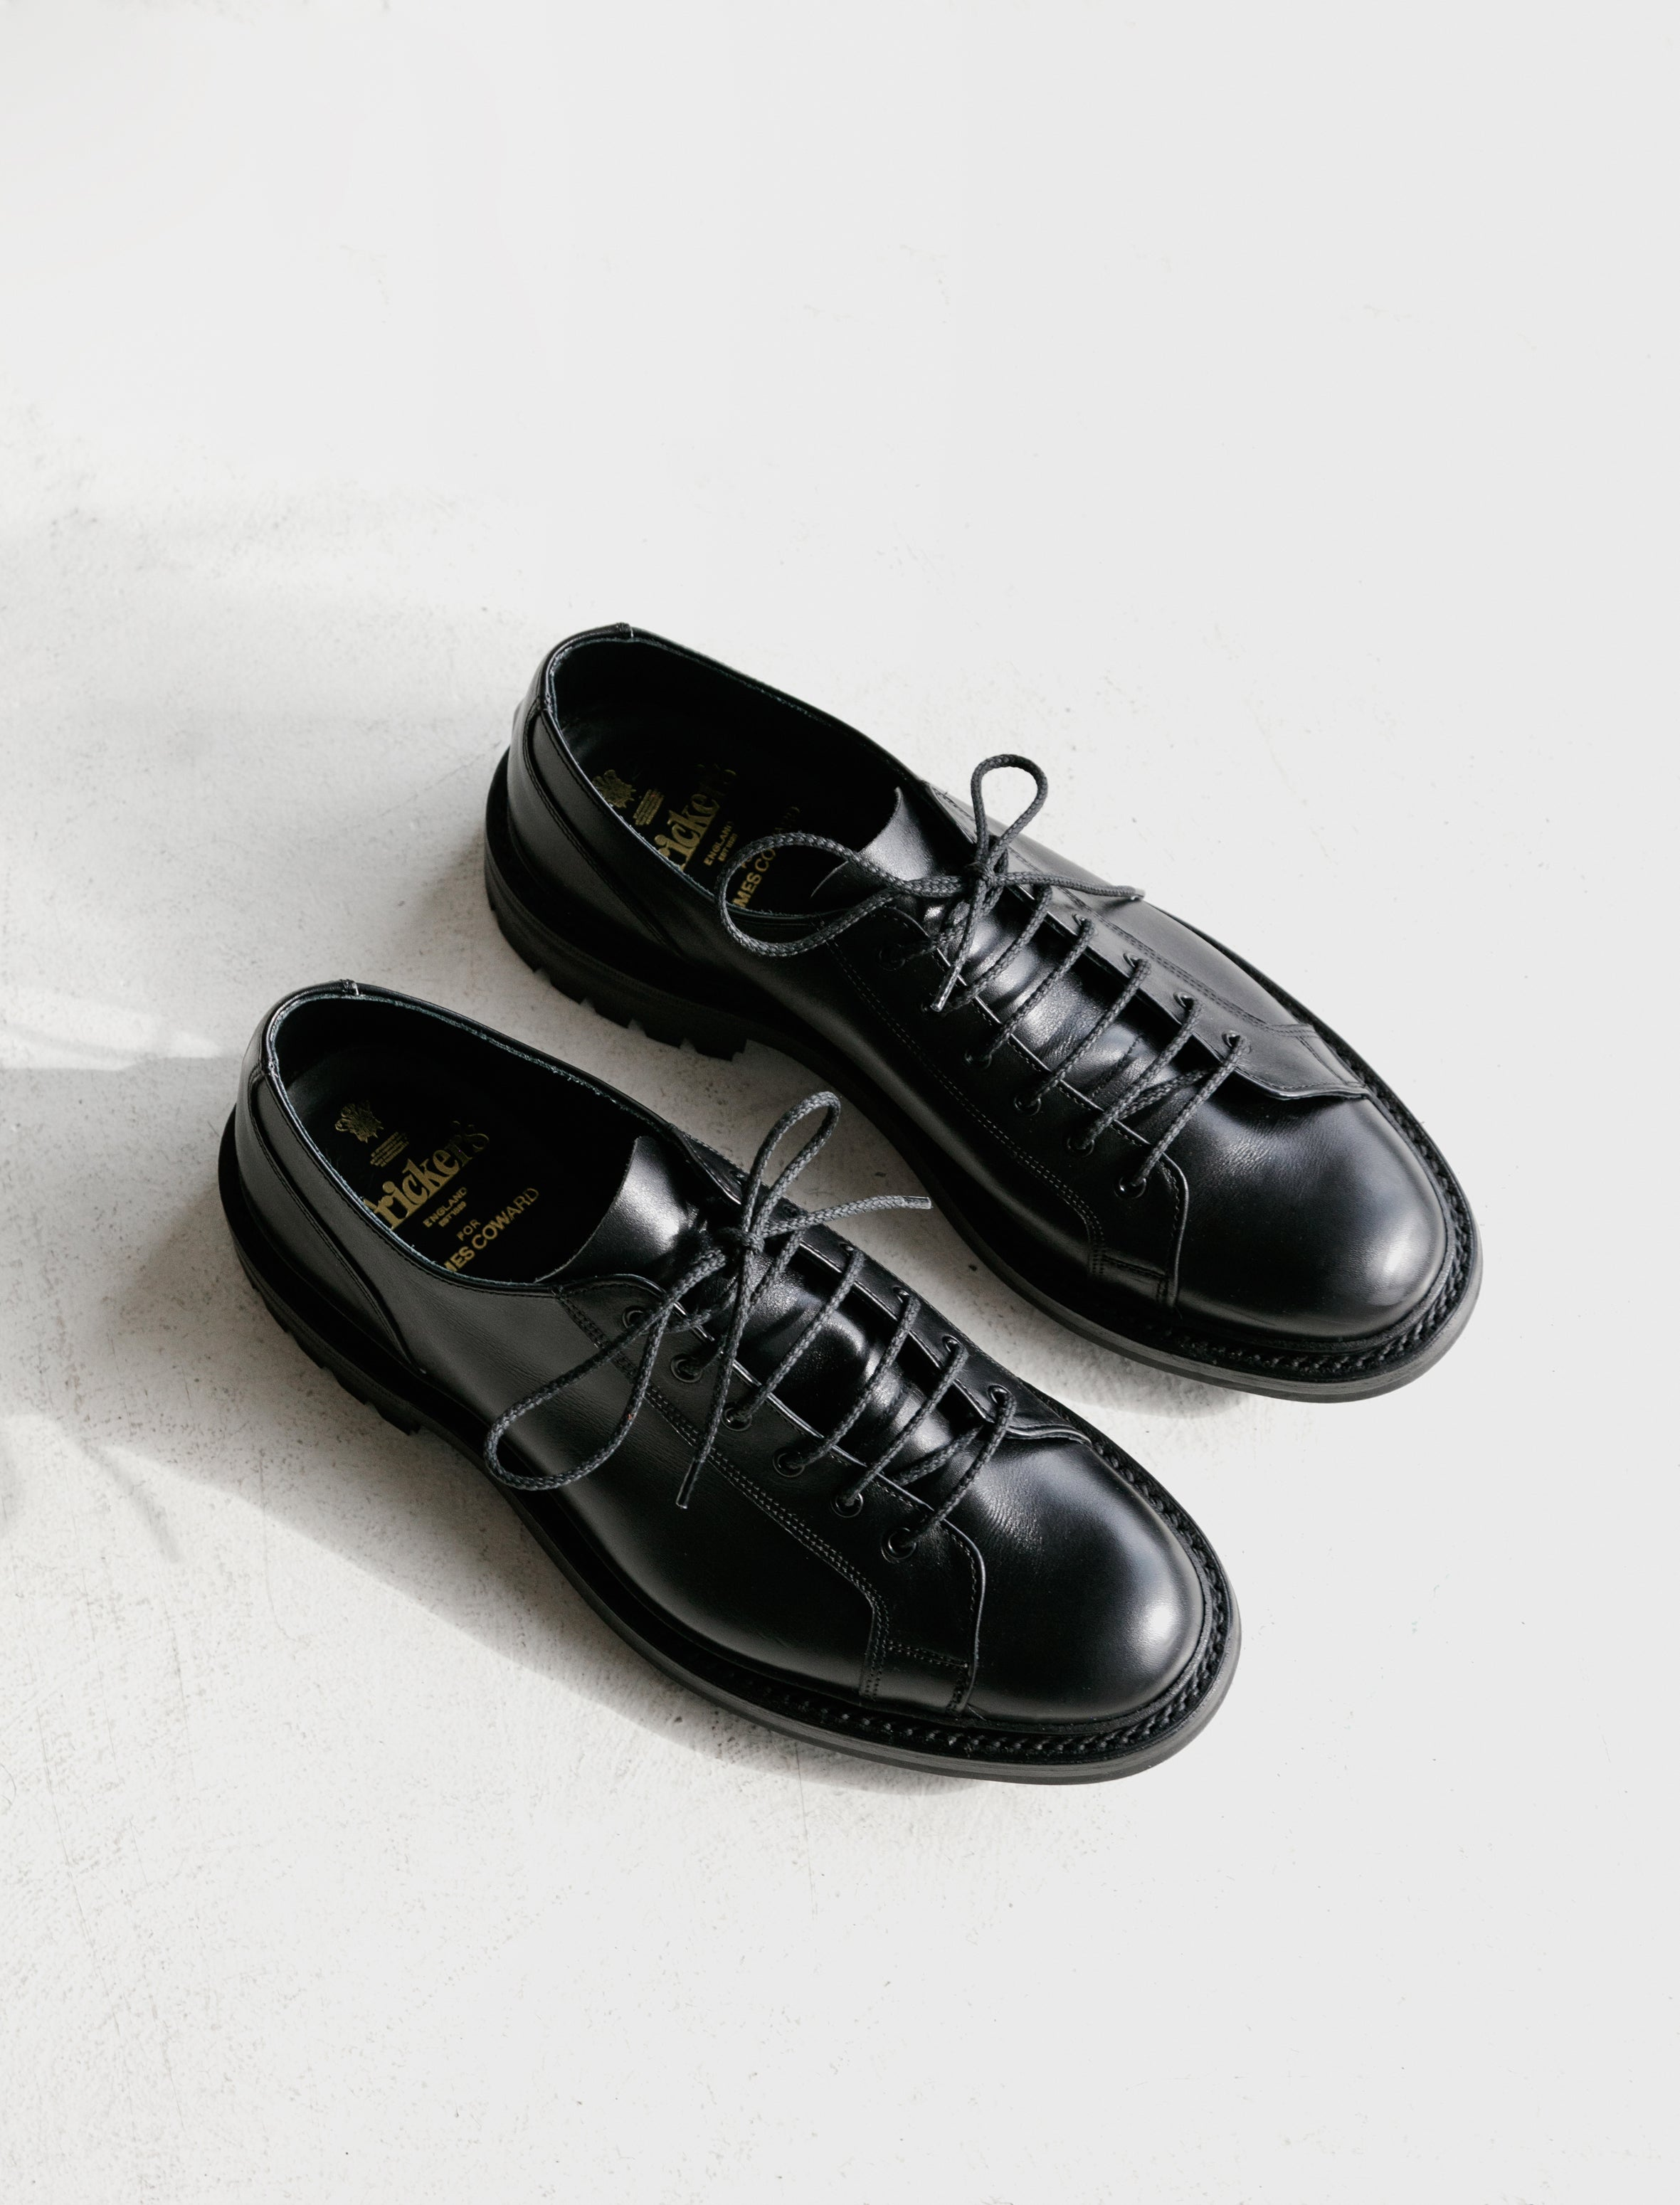 Trickers Monkey Shoe